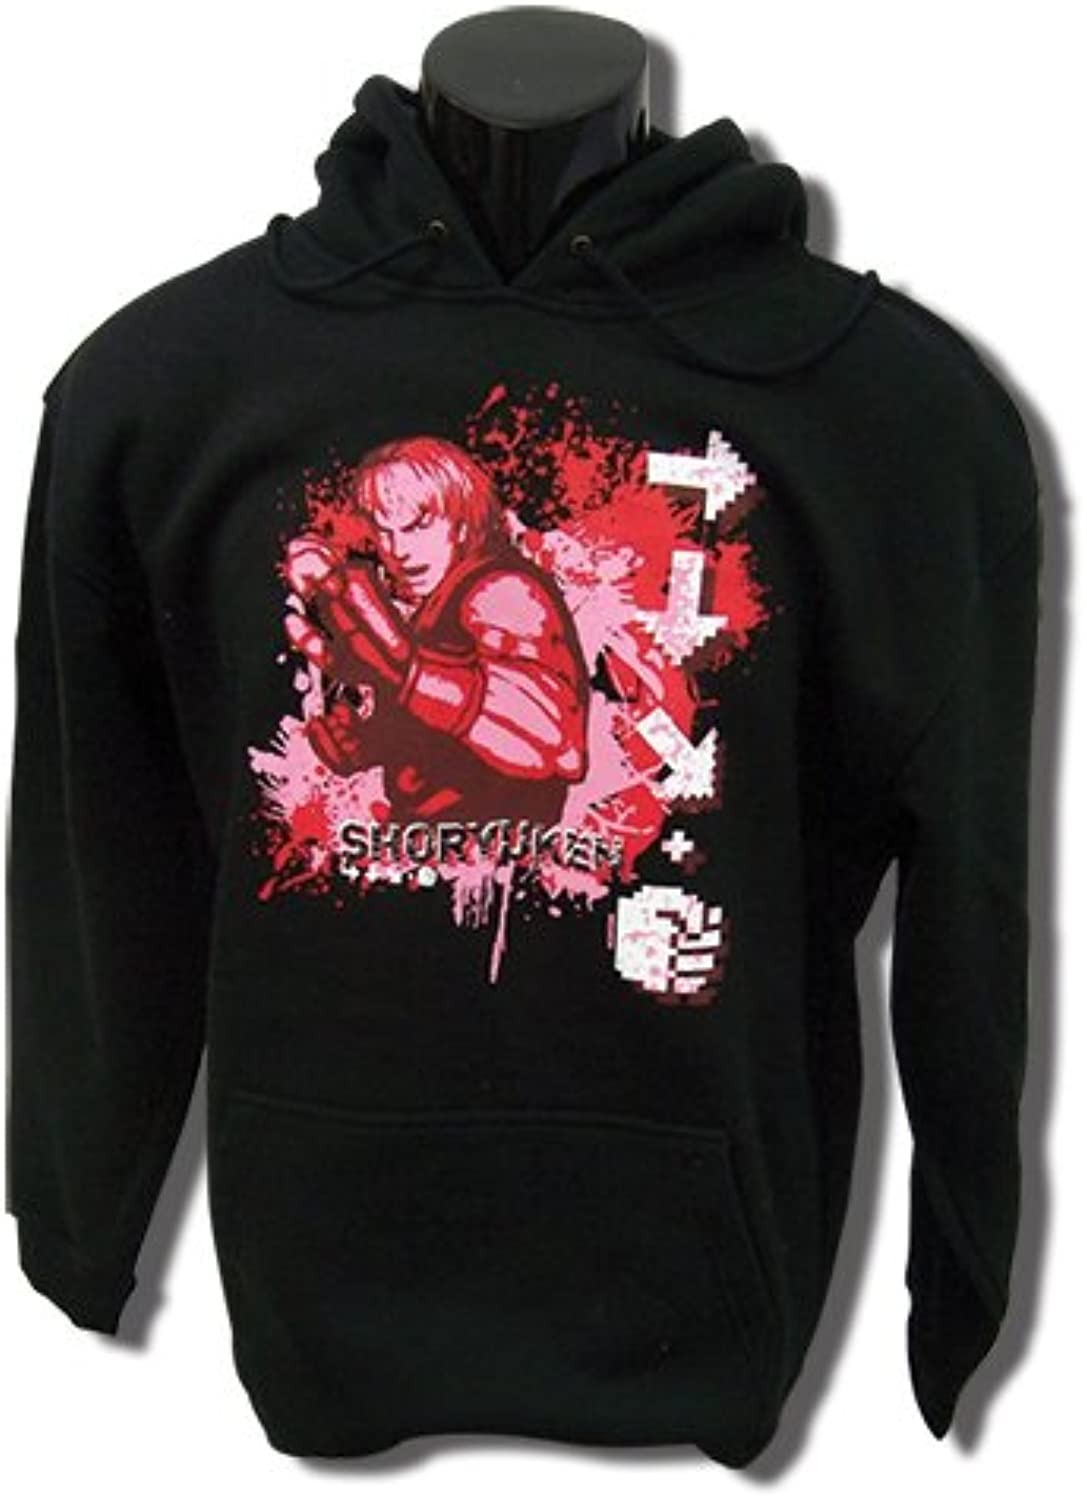 Super Street Fighter IV- Ken Shoryuken Hoodie Sweatshirt   M